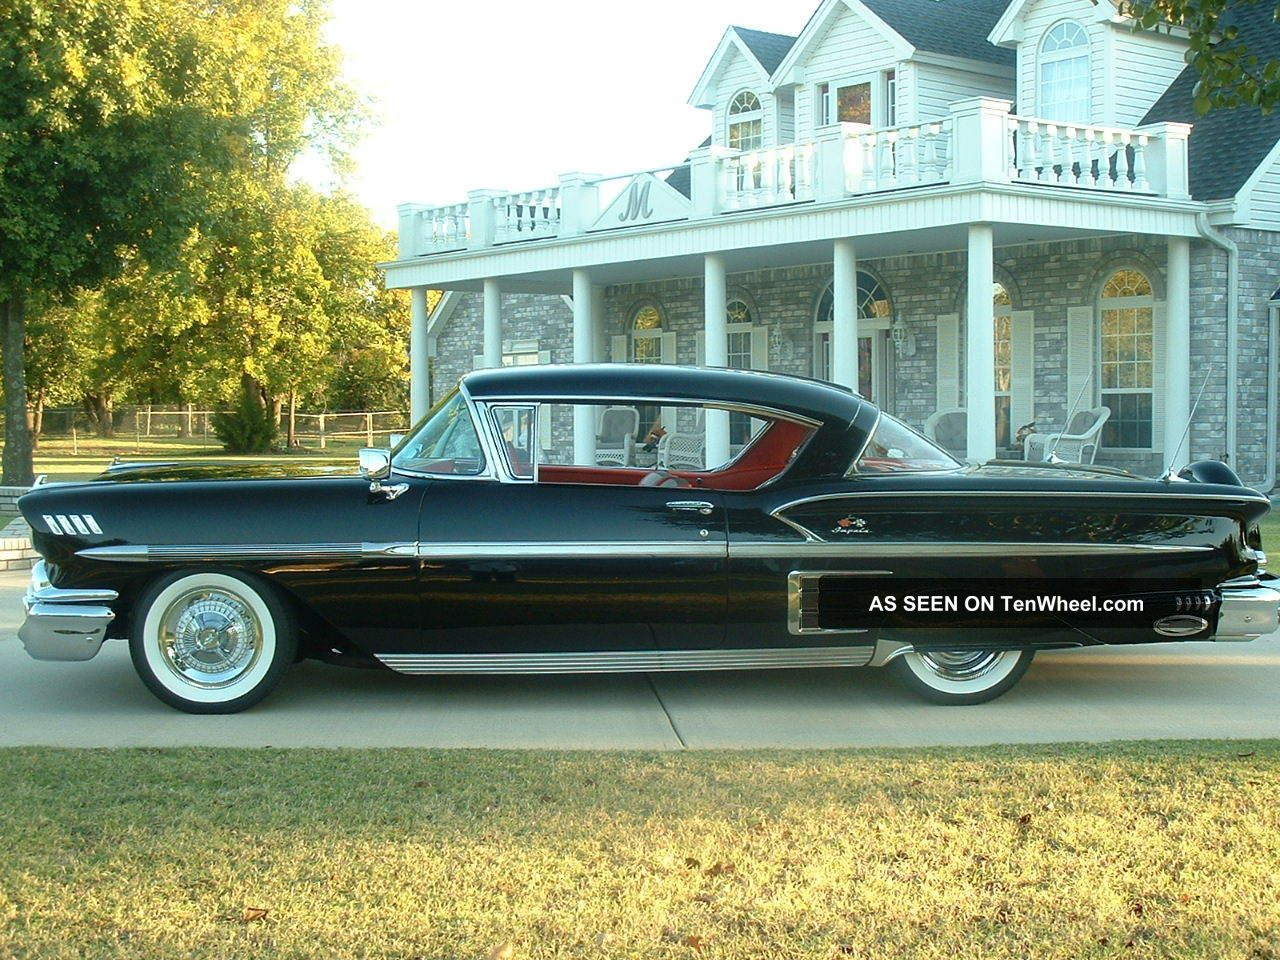 Classic 1958 Chevrolet Impala Impala photo